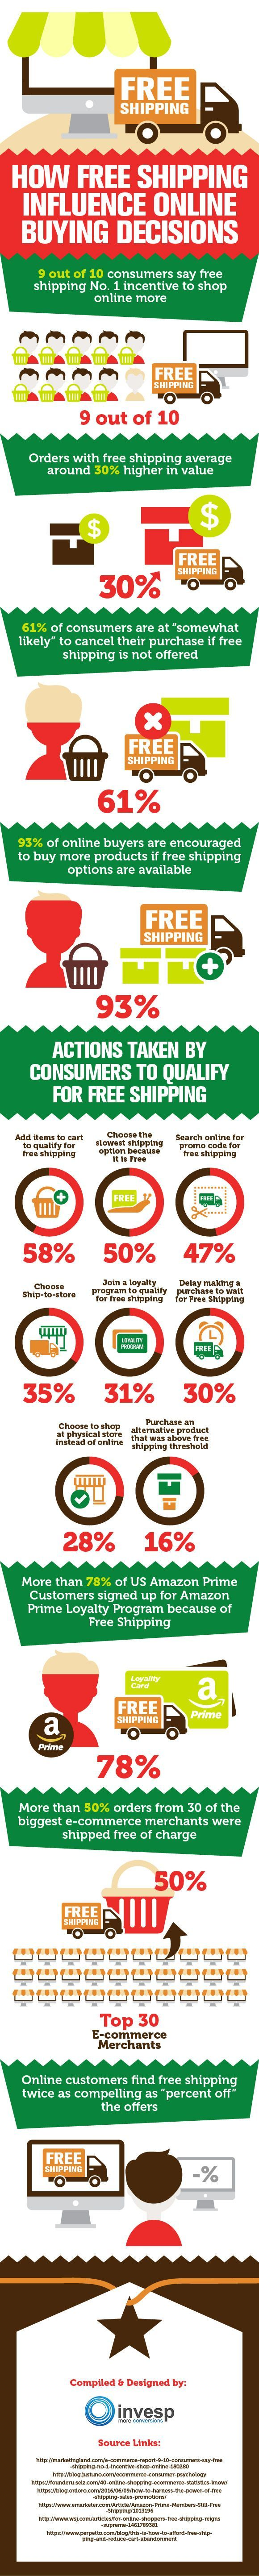 How Free Shipping Influence Online Buying Decisions #Infographic #Ecommerce